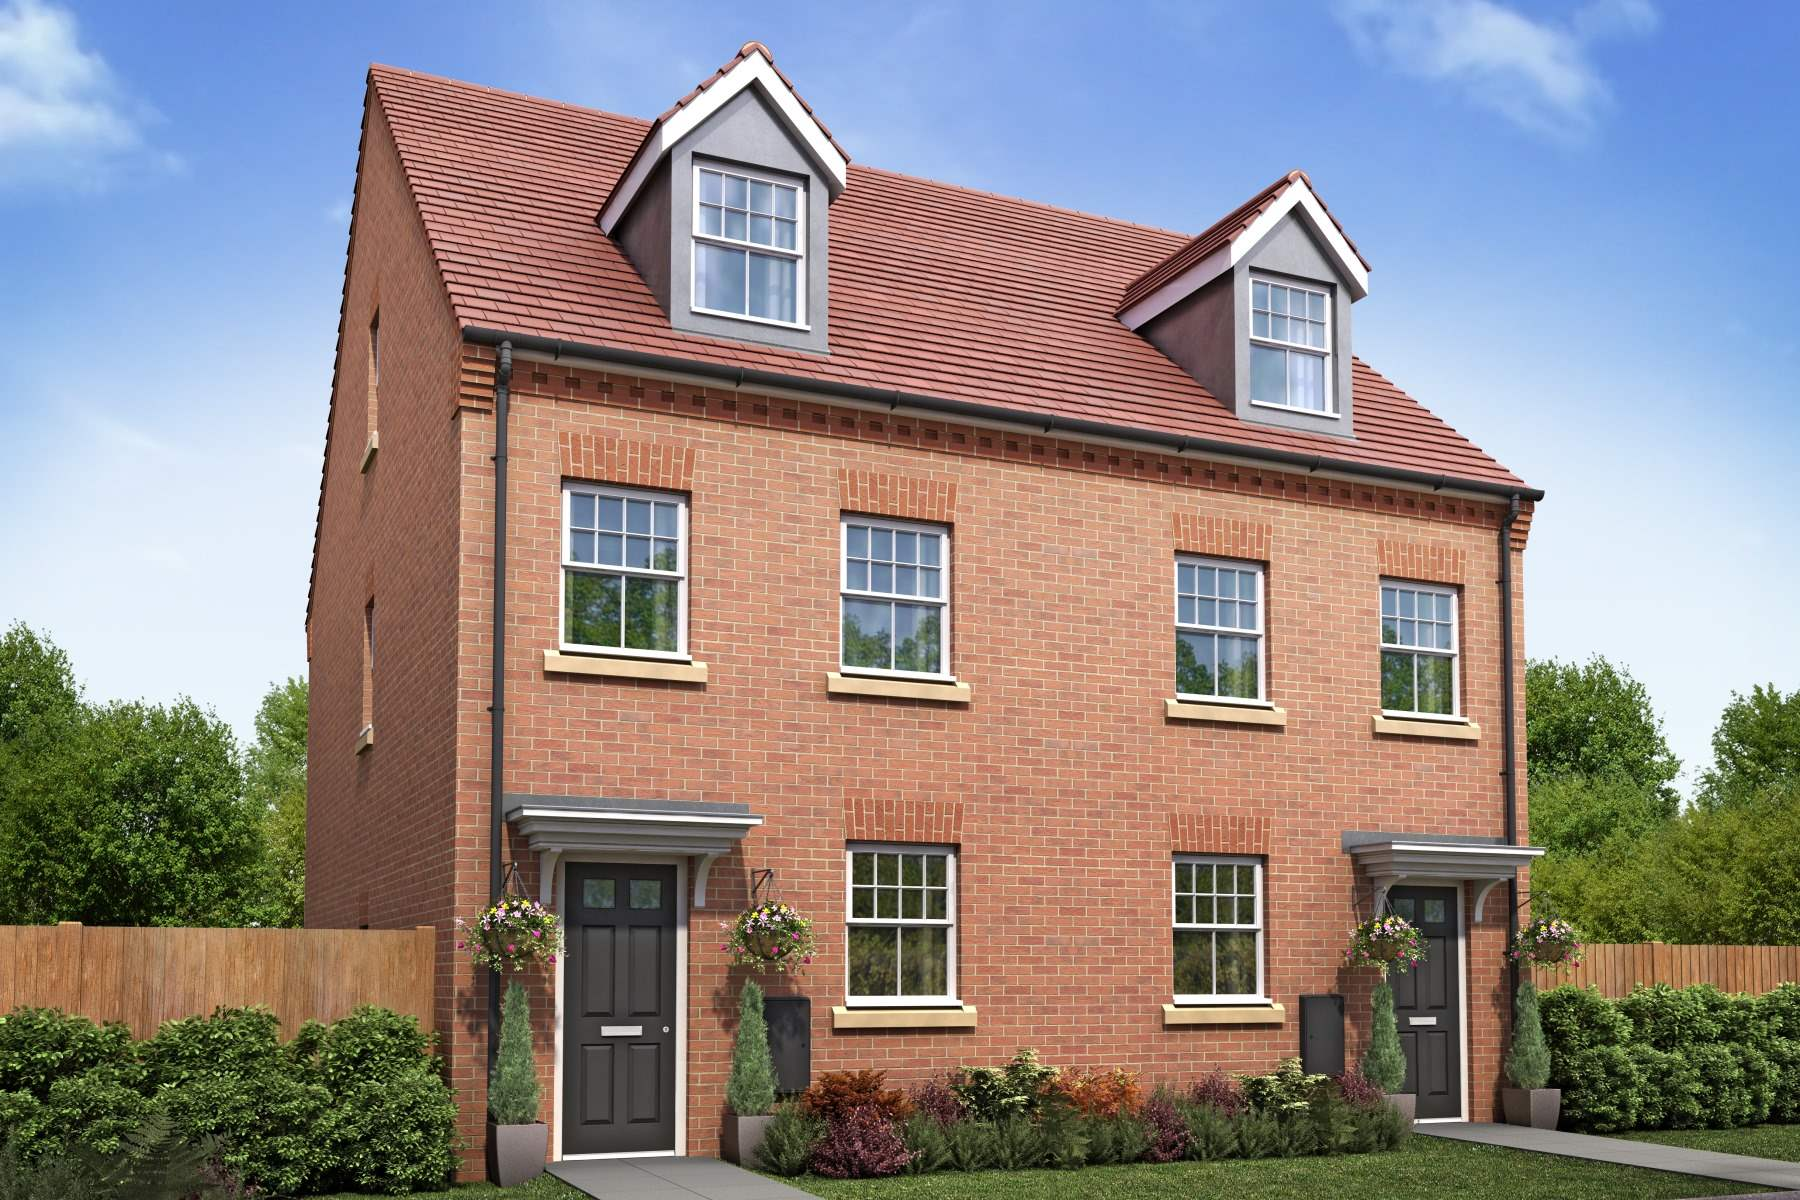 The rivington at winnington village northwich taylor wimpey for The rivington